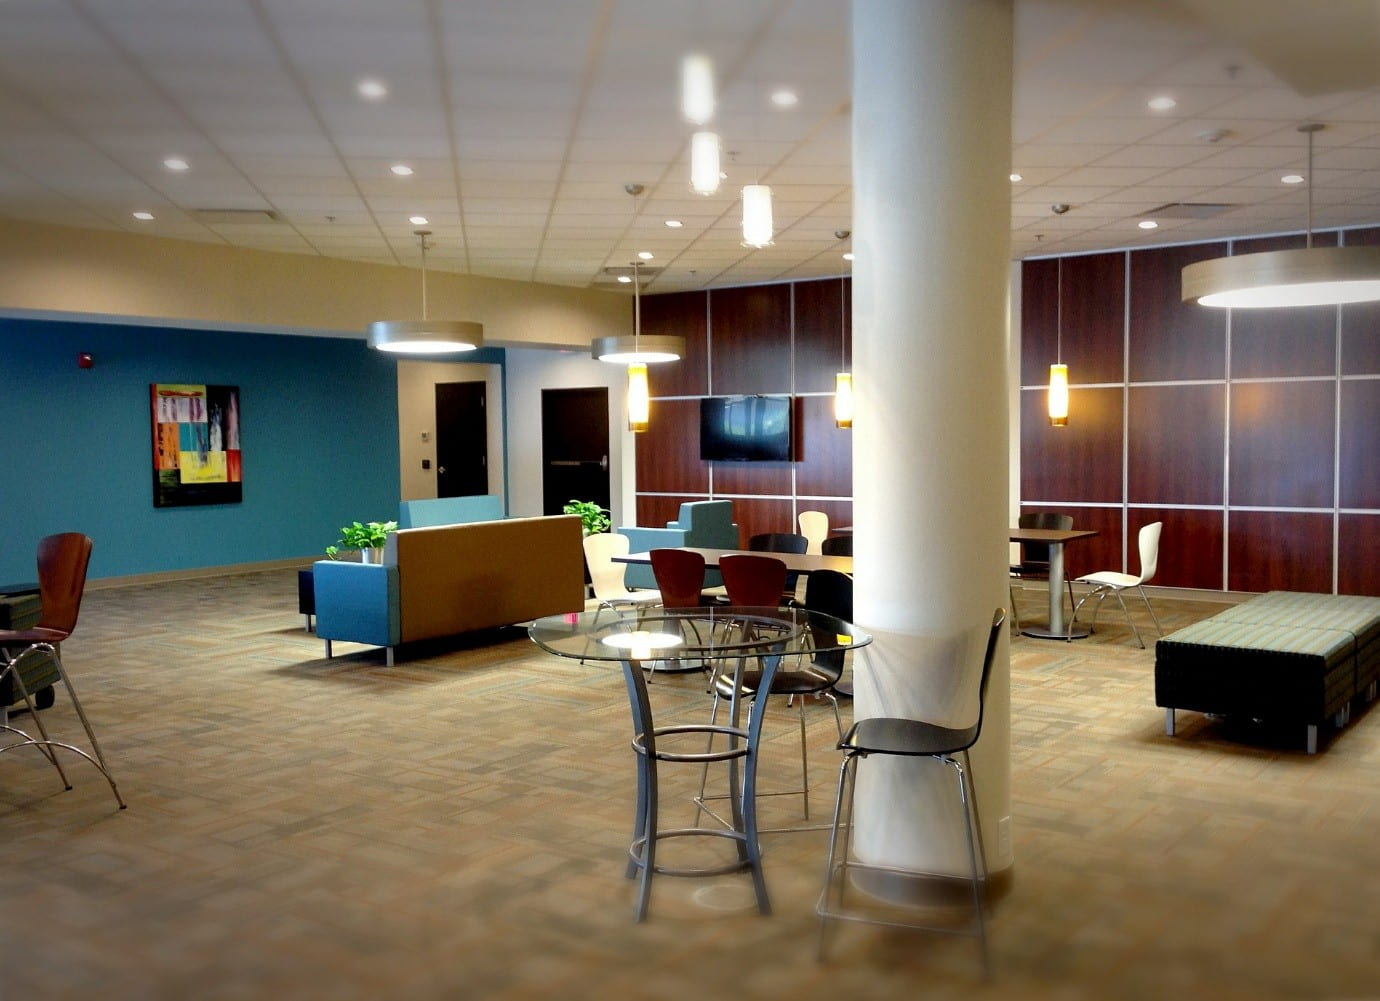 Tips to Attract Customers and Improve Customer Loyalty in a Waiting Room